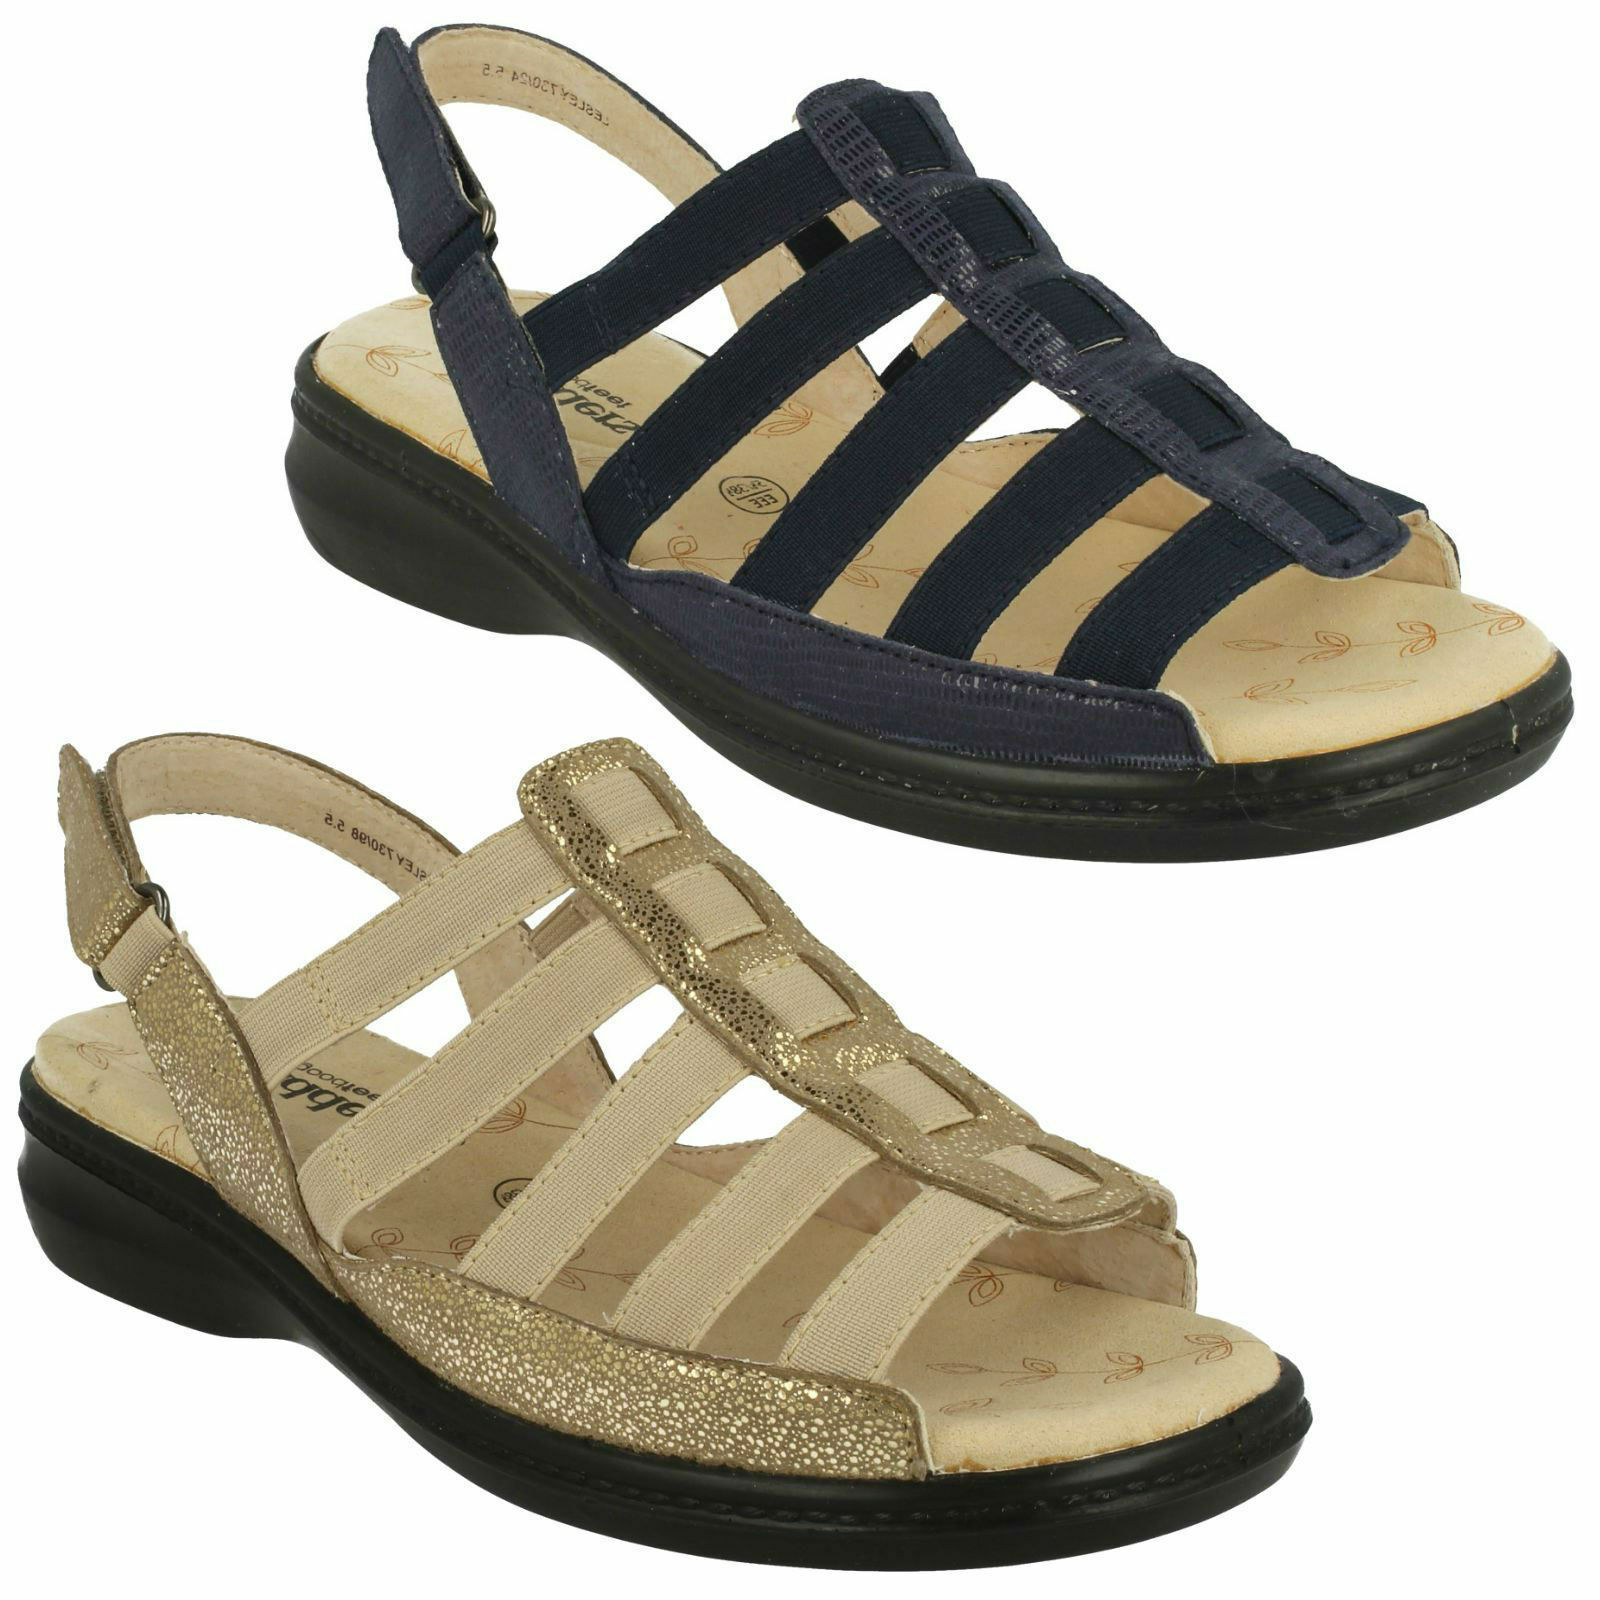 LADIES PADDERS LESLEY TOE ROUND TOE STRAPPY OPEN TOE LESLEY CASUAL COMFORT SUMMER SANDALS 73aa5c